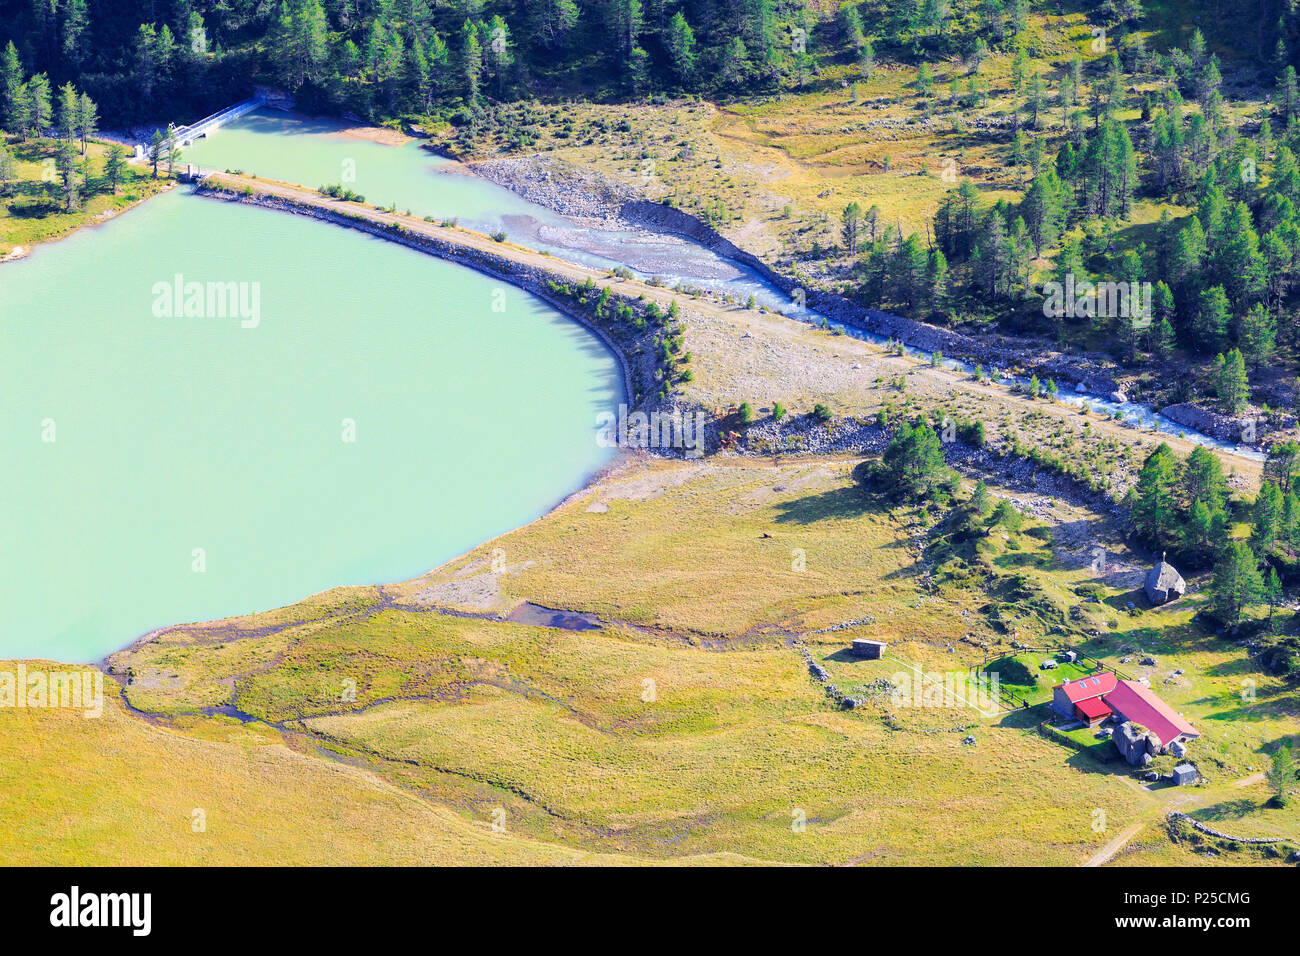 Farm and dam of Alp Palü from above, Alp Palü, Val Poschiavo, Graubünden, Switzerland. - Stock Image